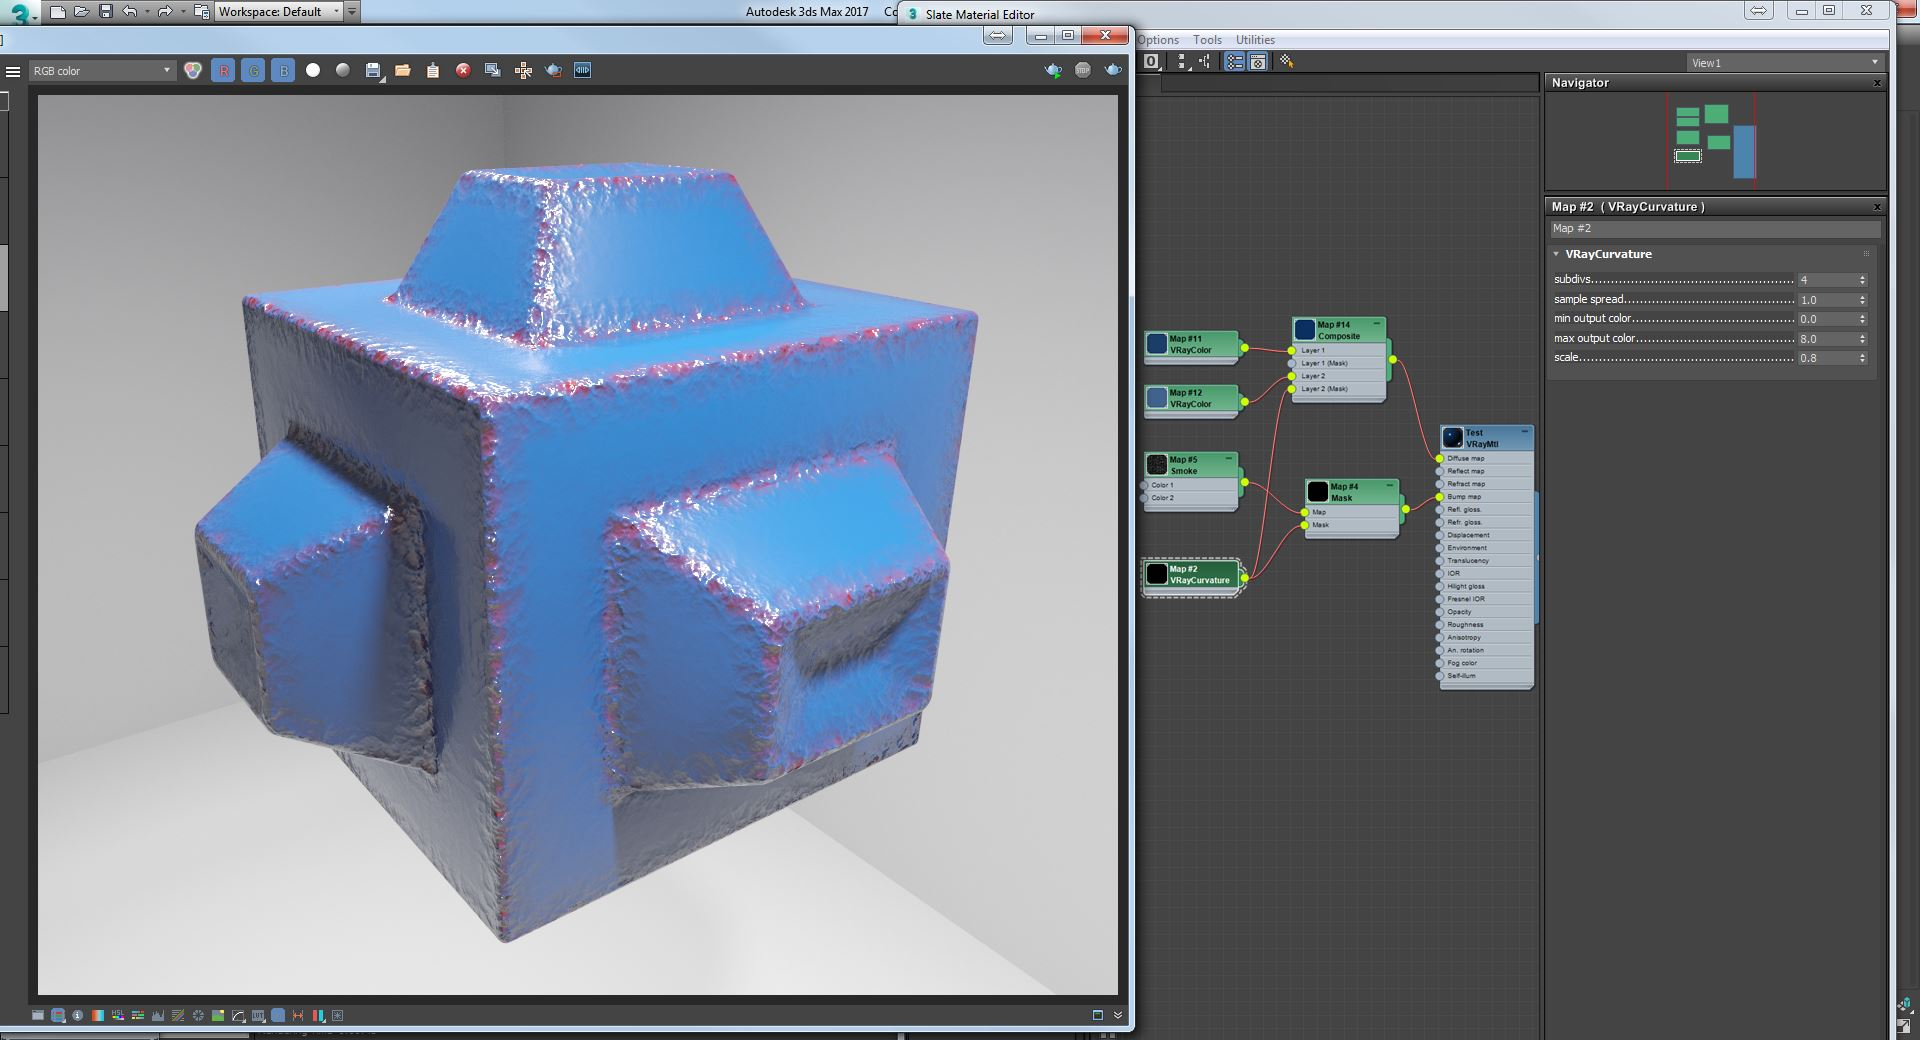 Vray Curvature used as Mask for adding some Red Color in the Diffuse